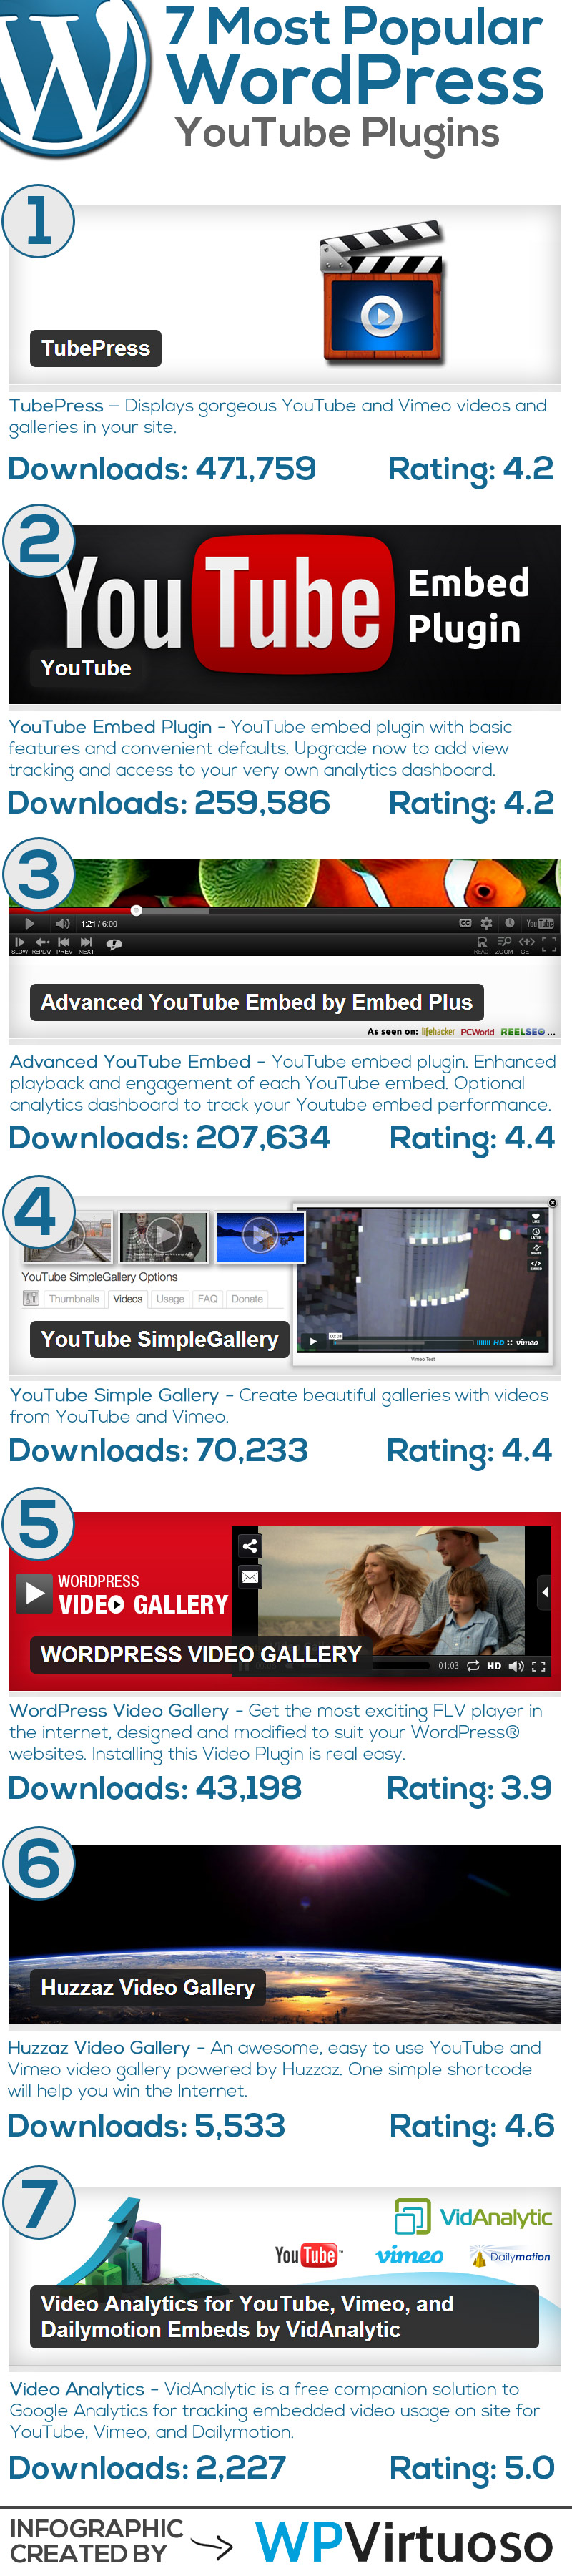 Best-Wordpress-YouTube-Plugins-Infographic